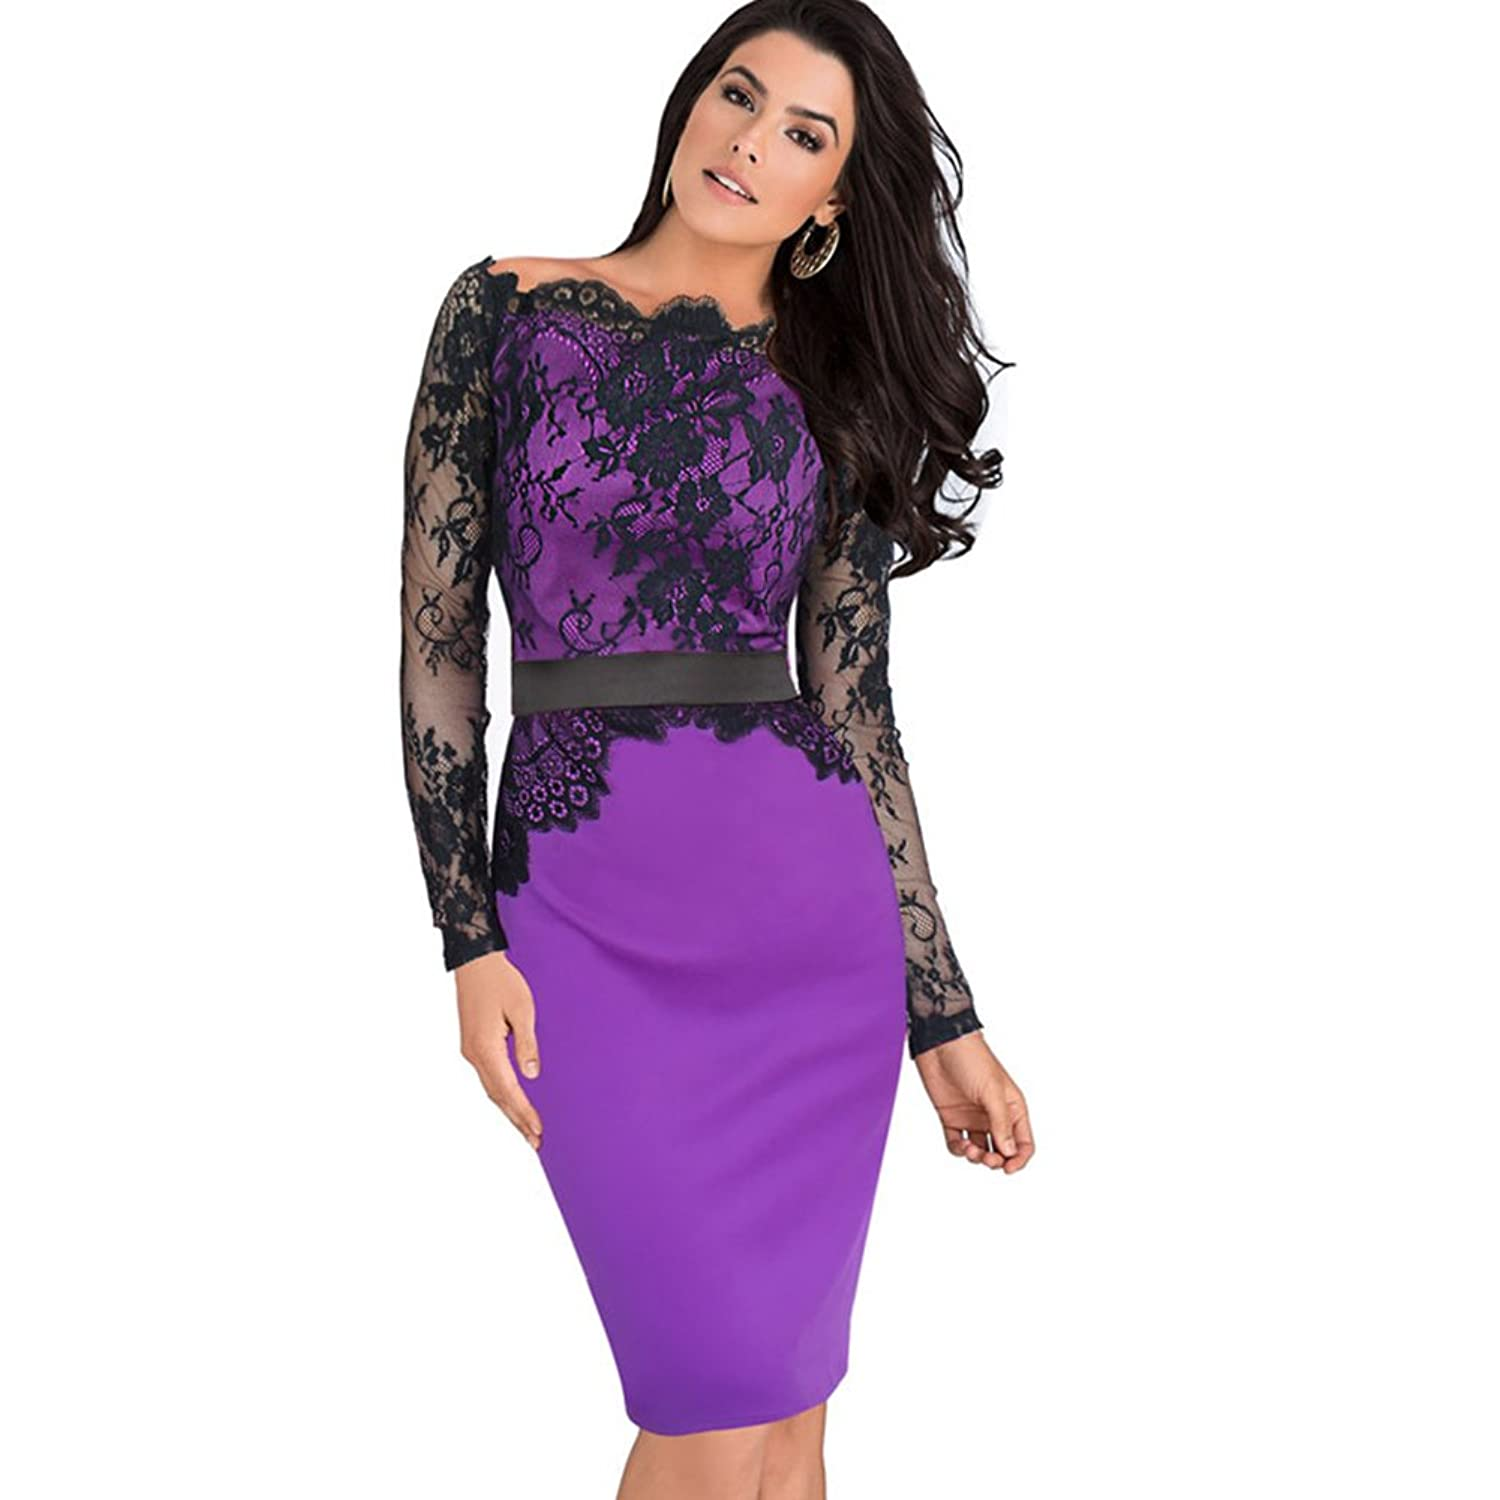 Aurora Bridal@ Lace Off Shoulder Patchwork Belted Stretch Bodycon Party Dresses